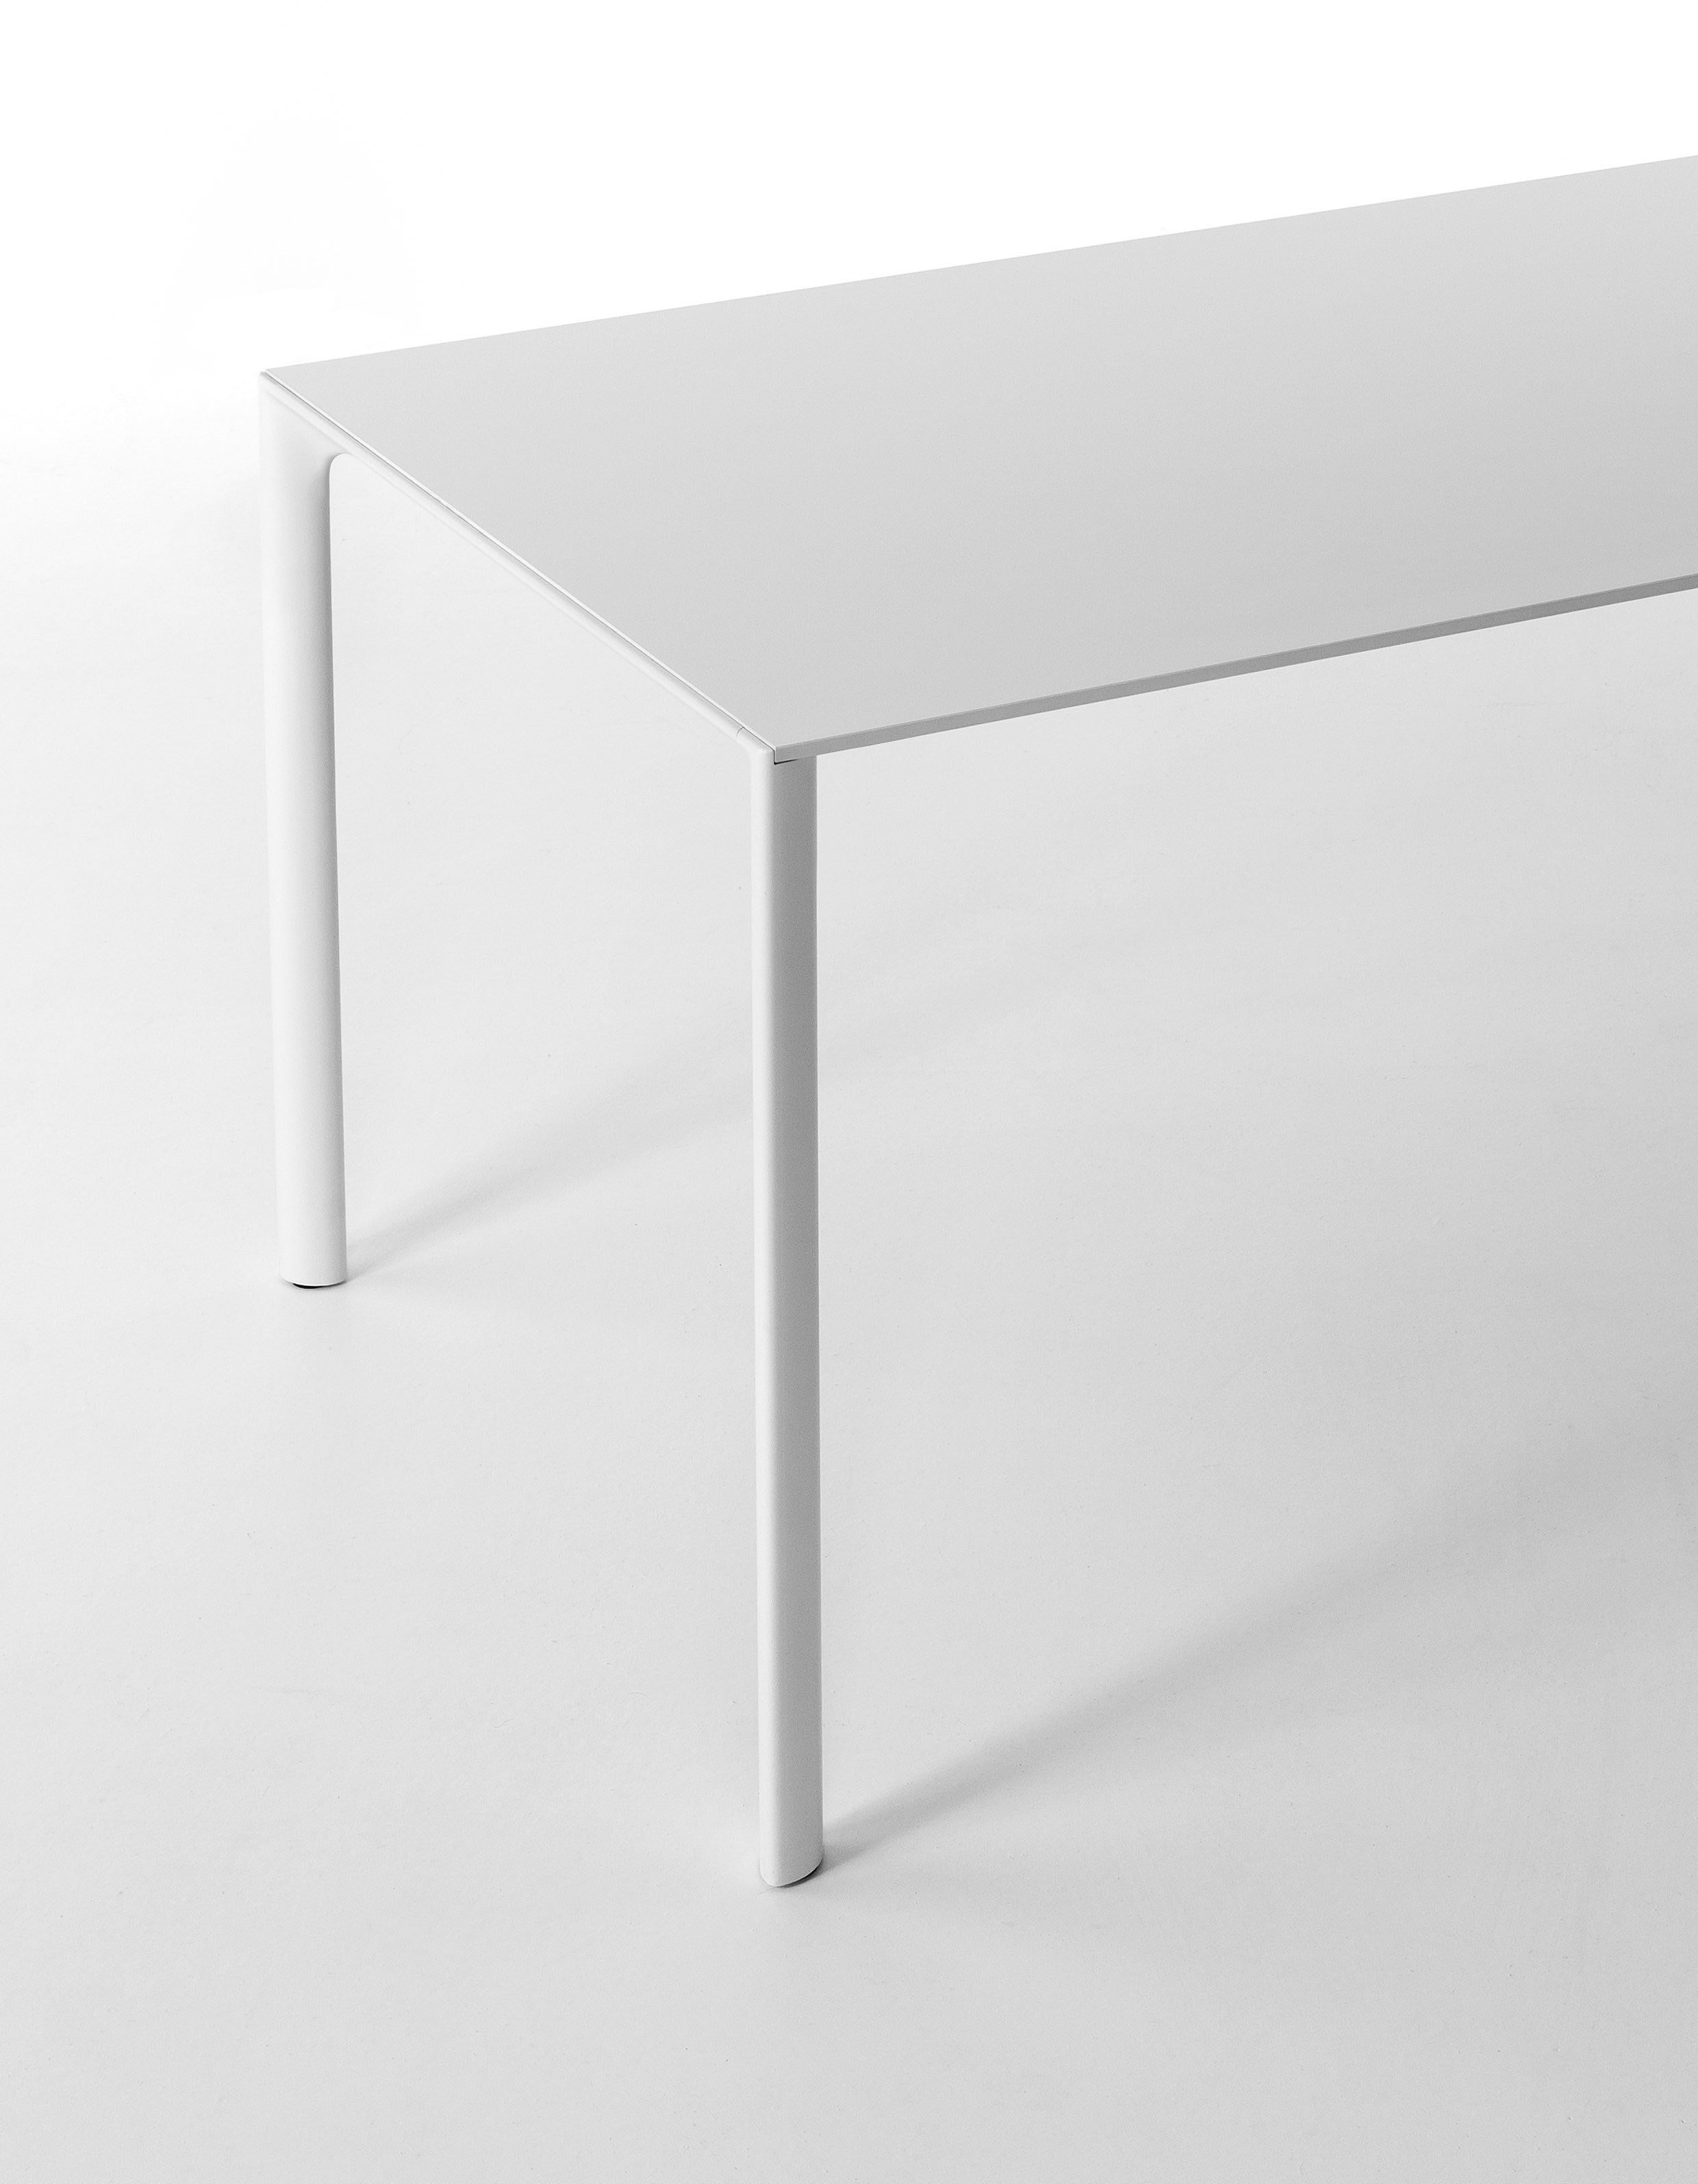 Table extensible rectangulaire maki by kristalia design for Table extensible rectangulaire